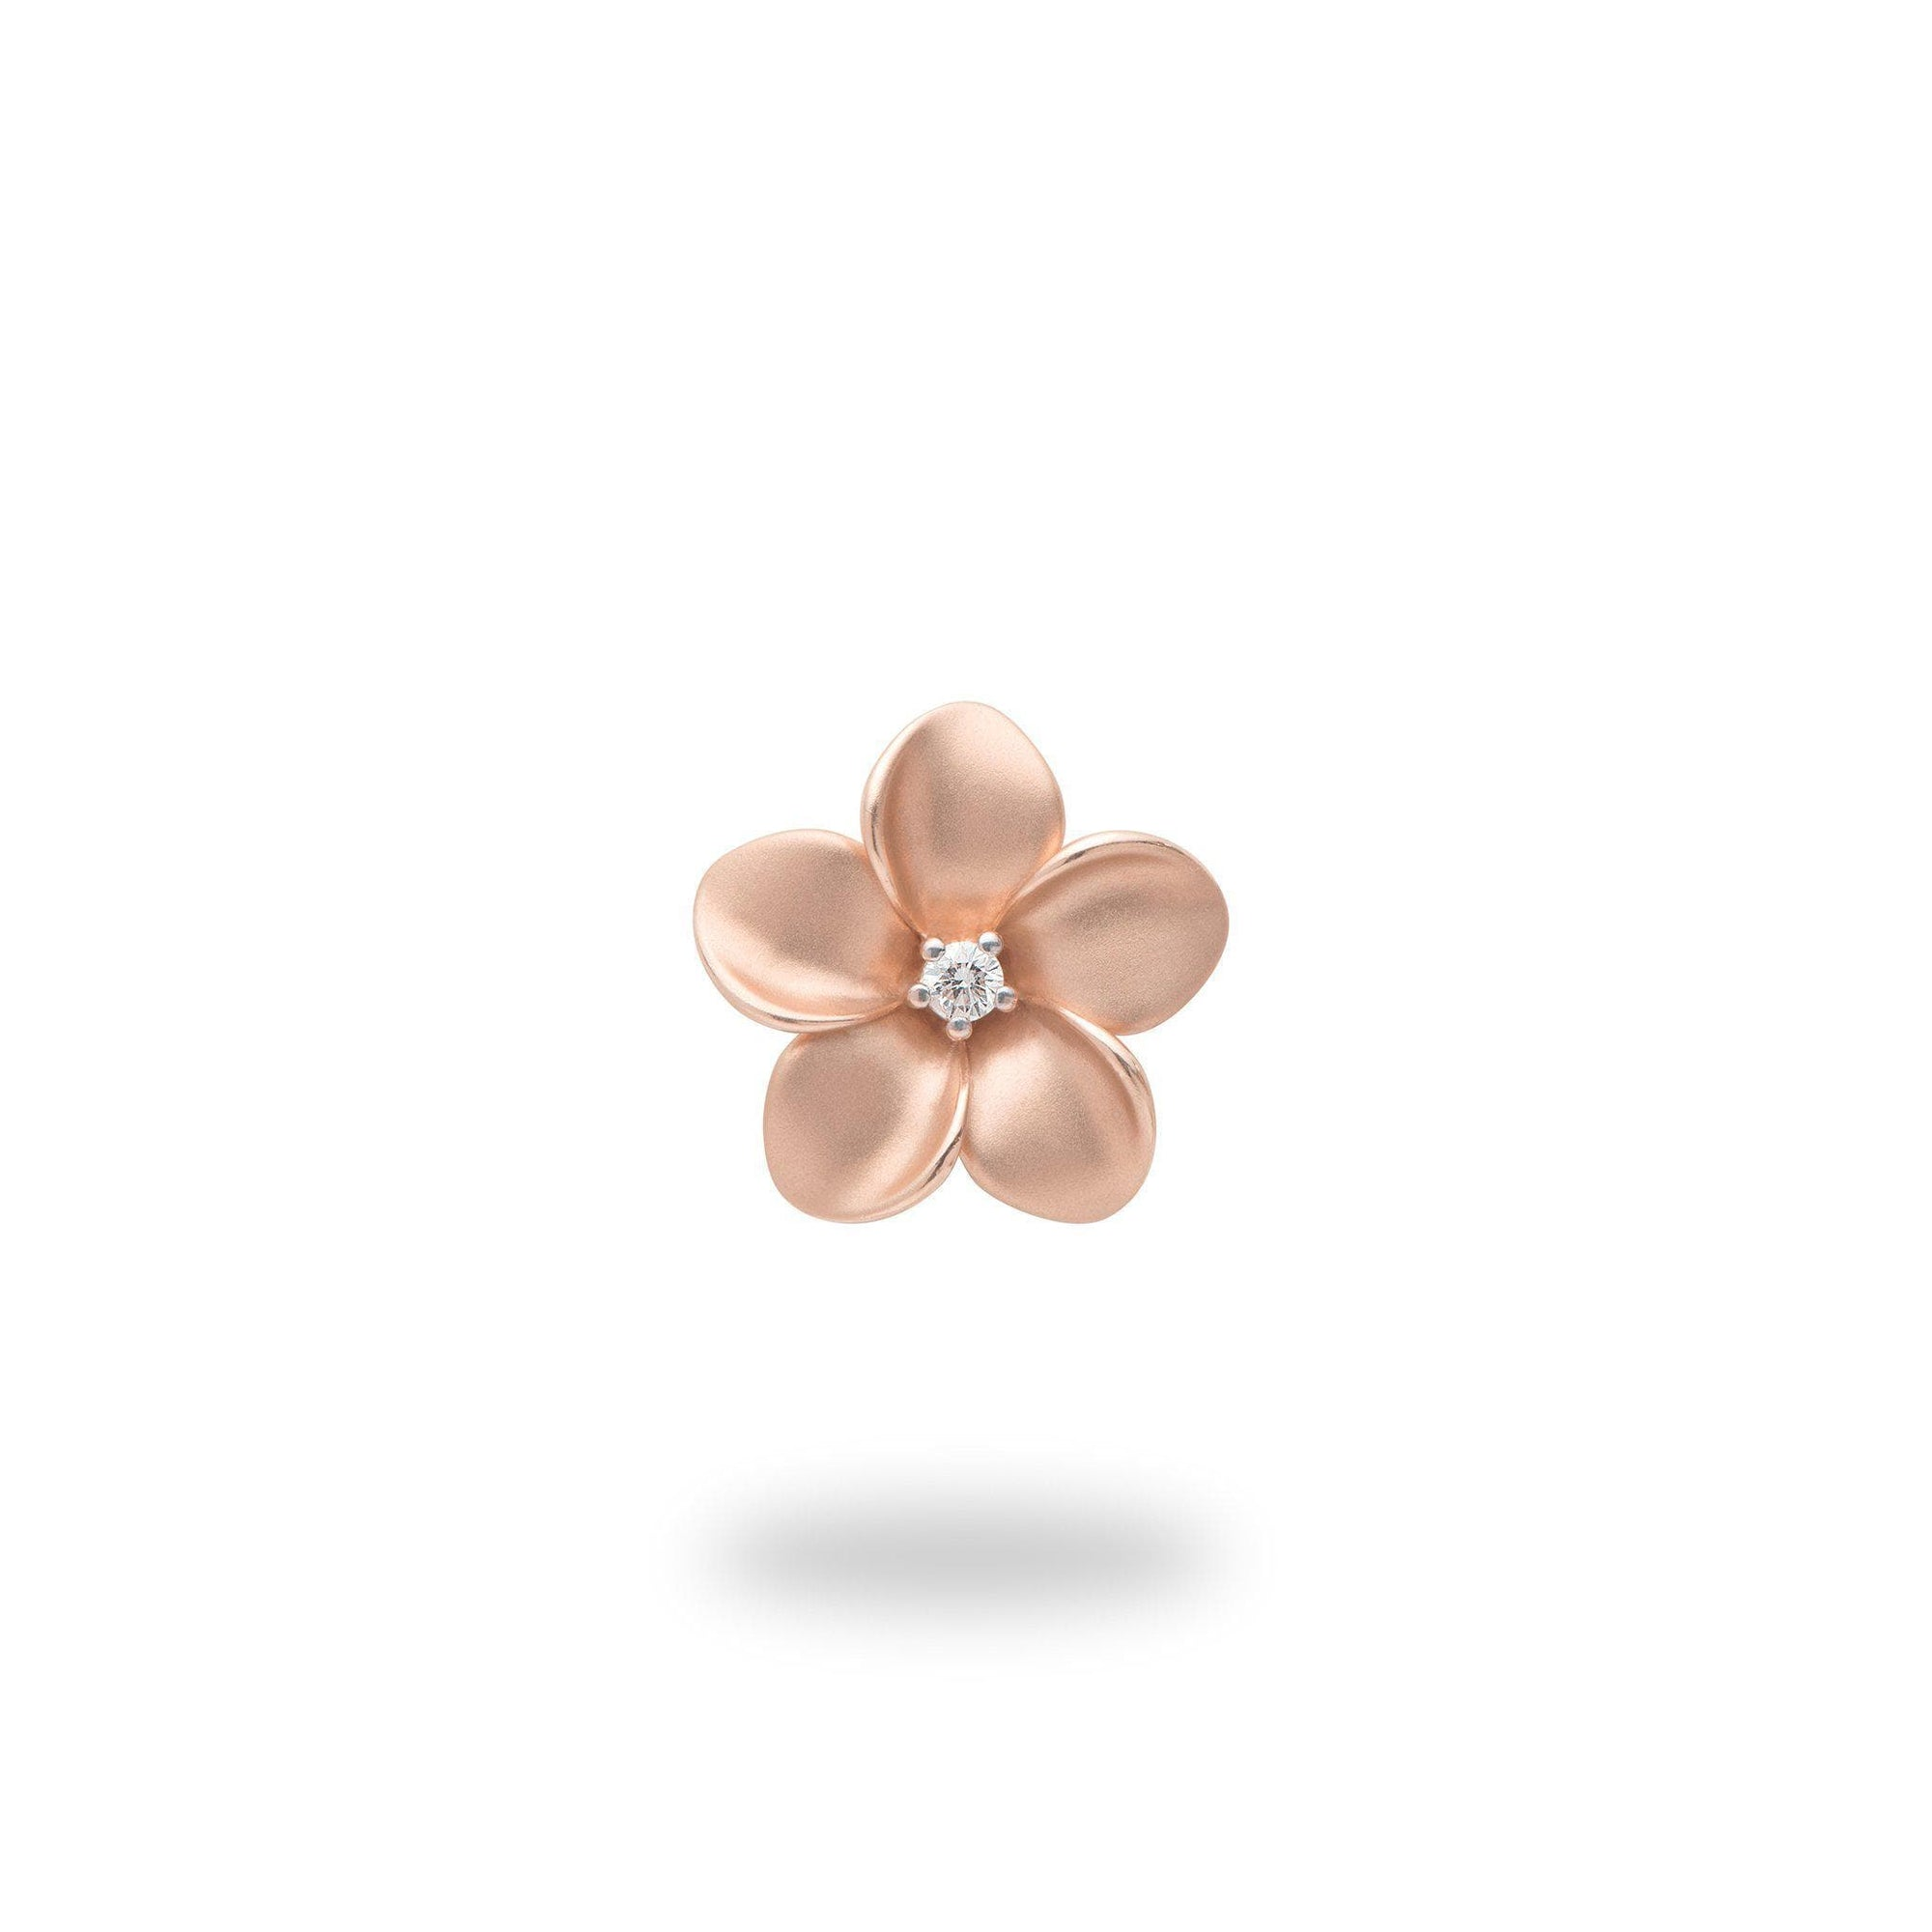 Plumeria Pendant in Rose Gold with Diamond - 13mm-[SKU]